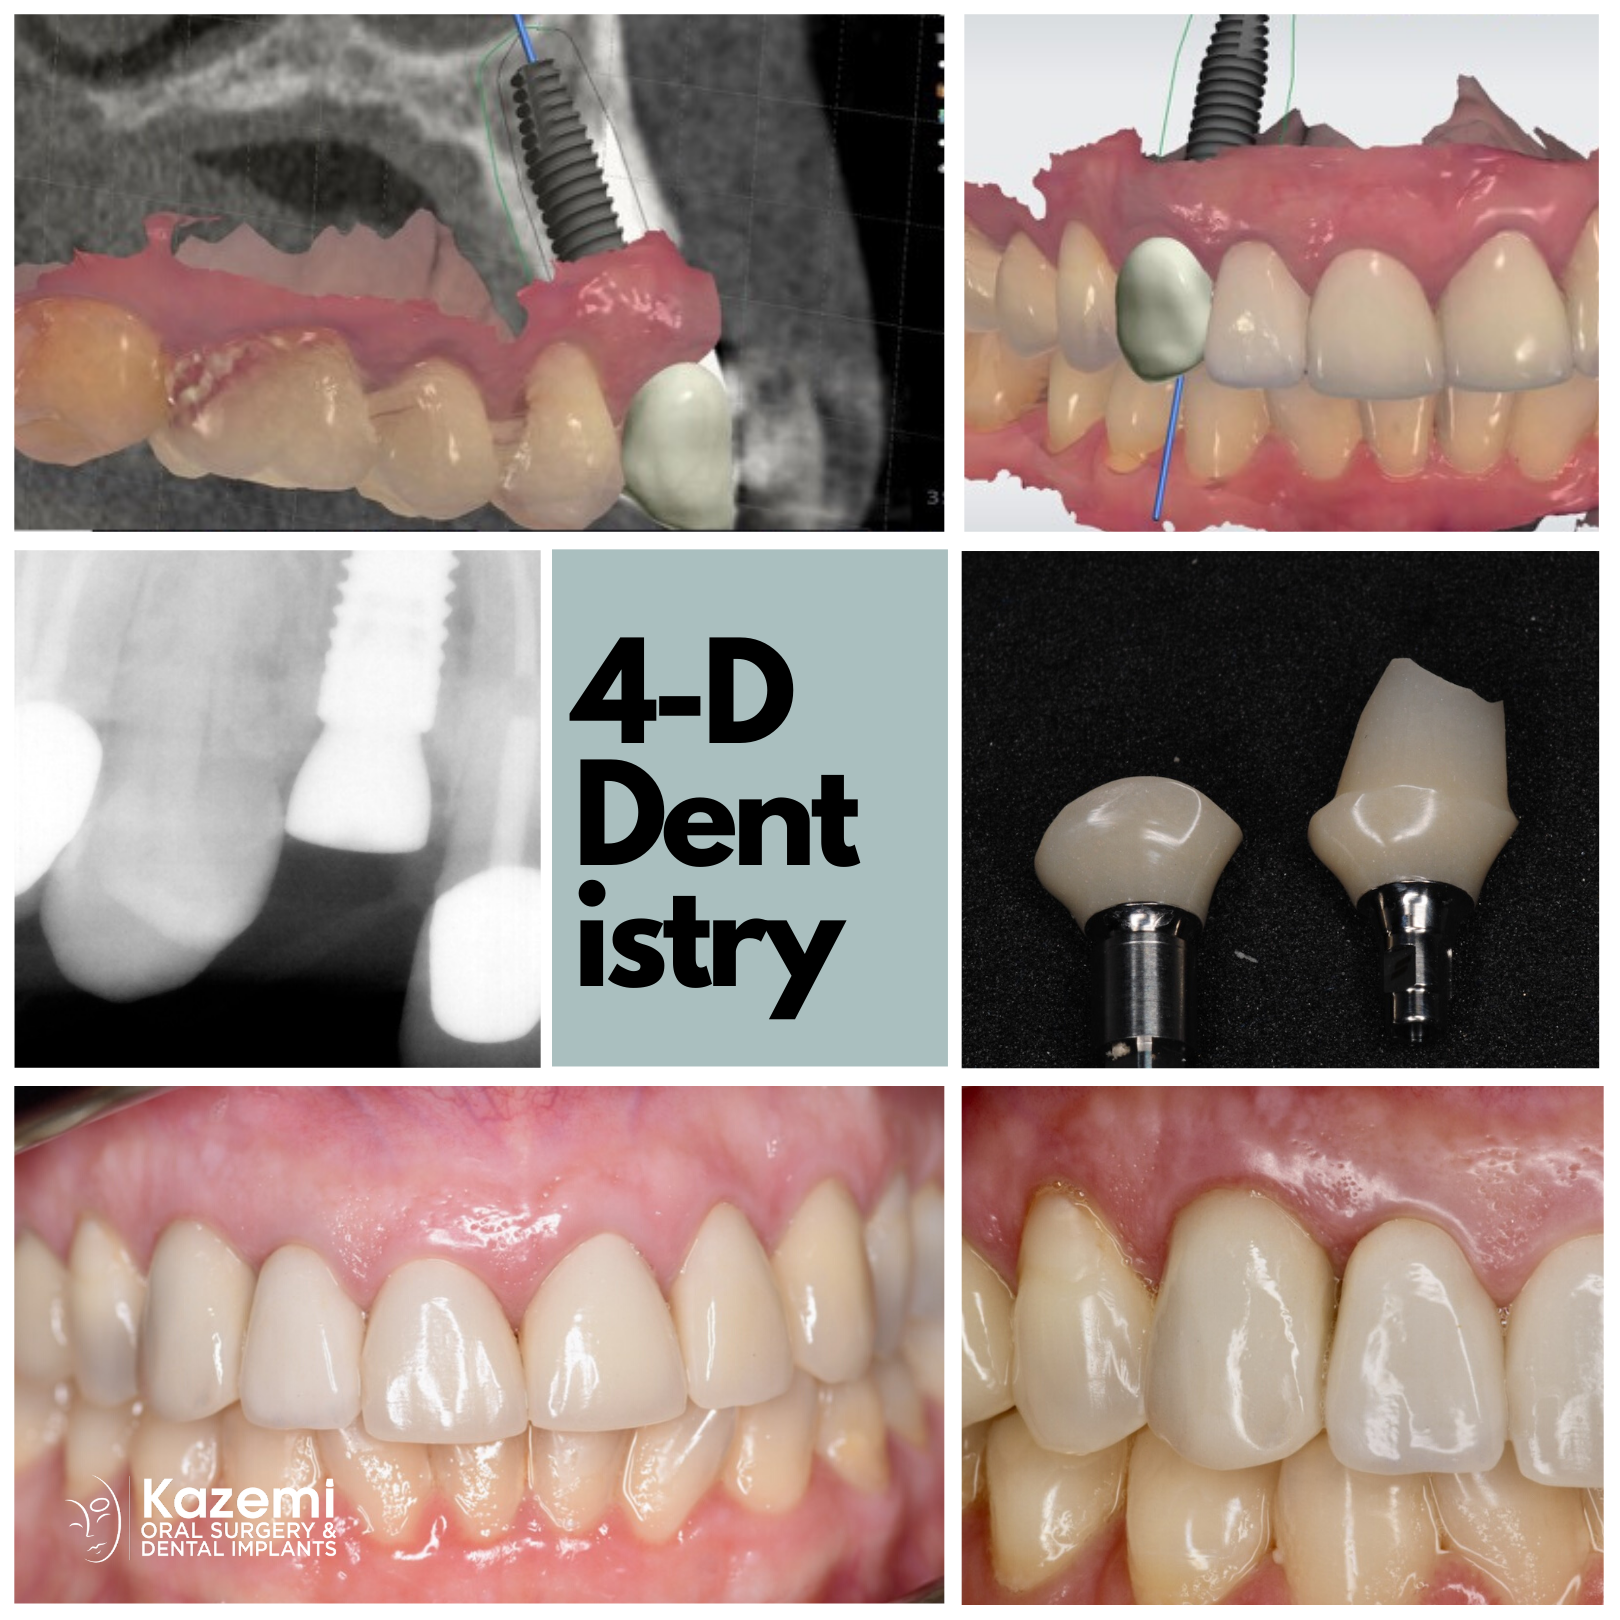 dental-implant-canine-digital-dentistry-customized-healing-abutment-partial-extraction-therapy-kazemi-oral-surgery